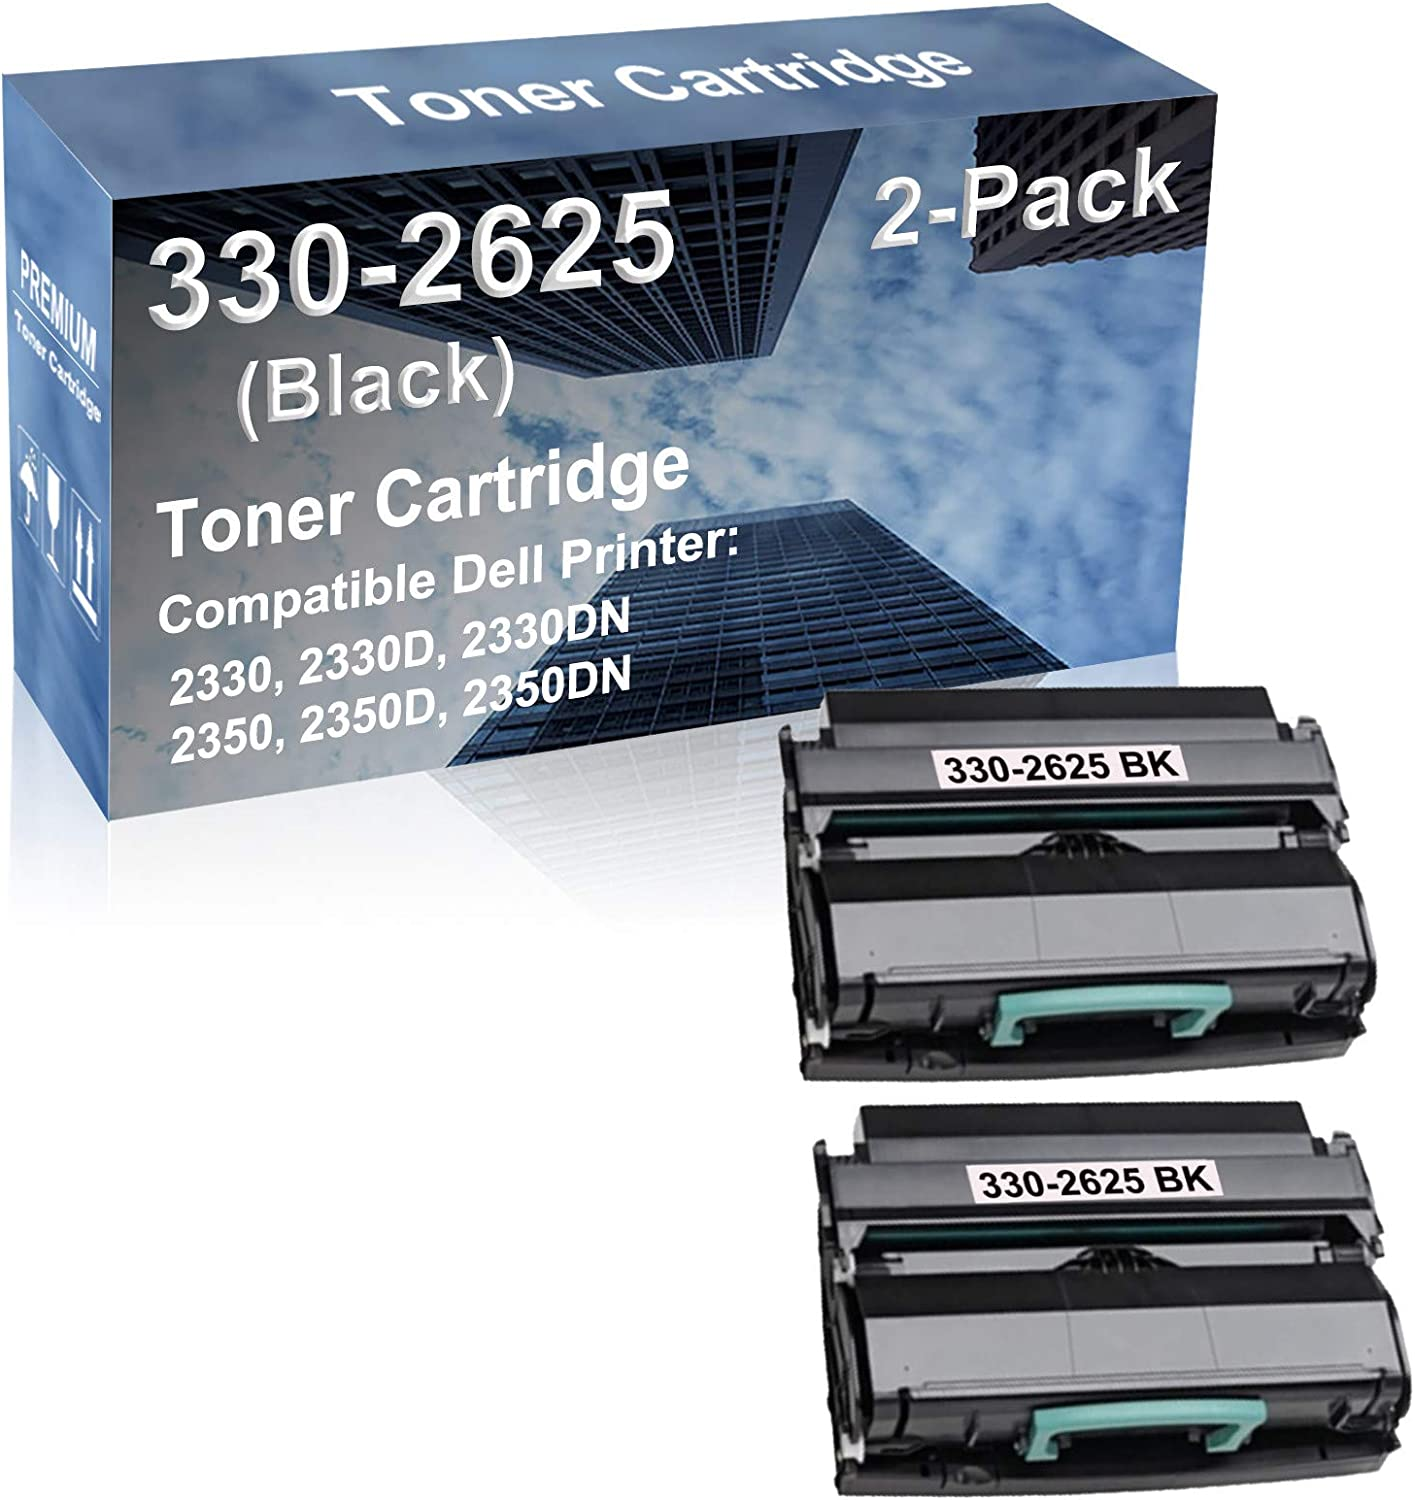 2-Pack Compatible High Capacity 330-2625 Imaging Toner Cartridge use for Dell 2330, 2330D Printer (Black)